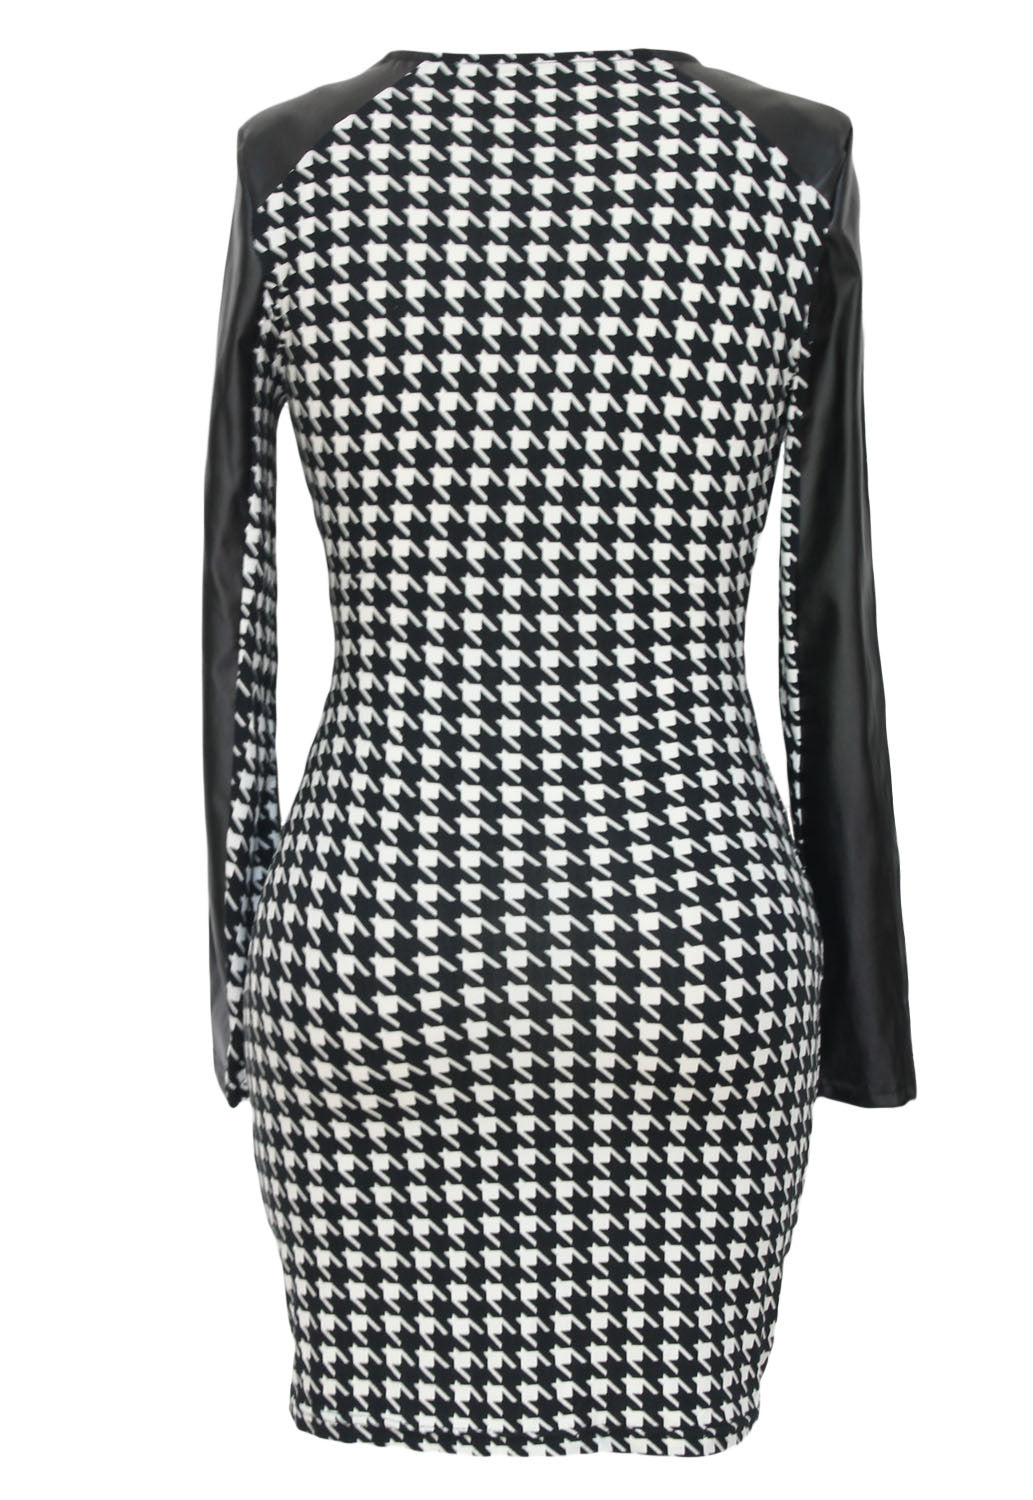 Faux Leather Long Sleeves Houndstooth Print Mini Dress 21913 - IBL Fashion - 2